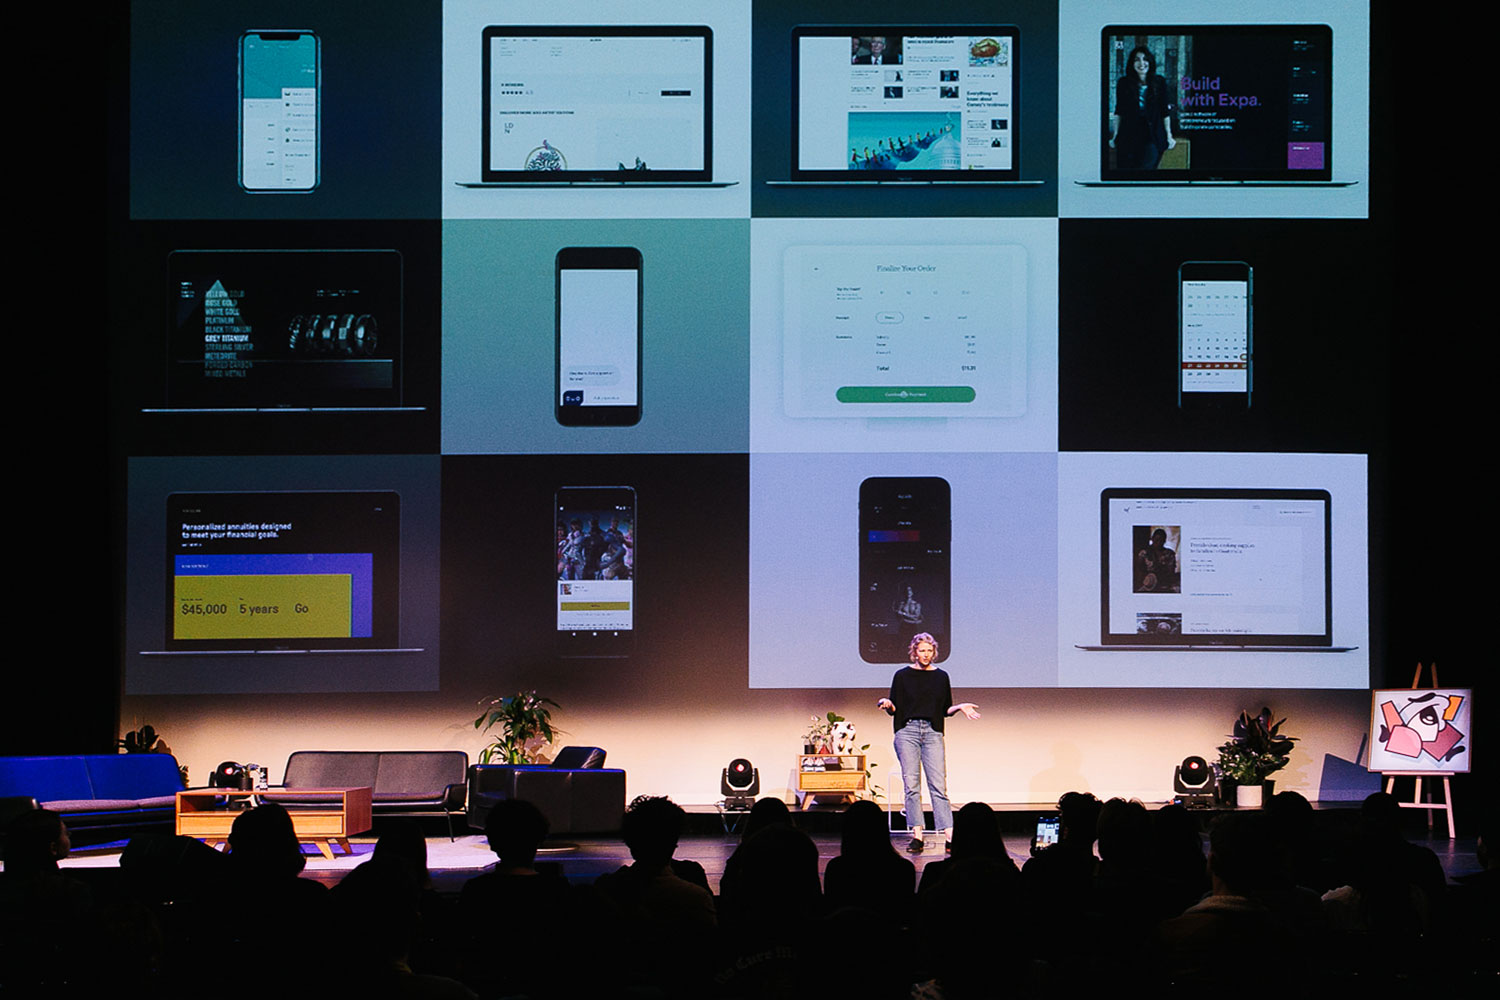 Rise of the Hybrid: 2021's premier creative event, The Design Conference, has one eye on Brisbane, the other on the world – less than 40 seats left